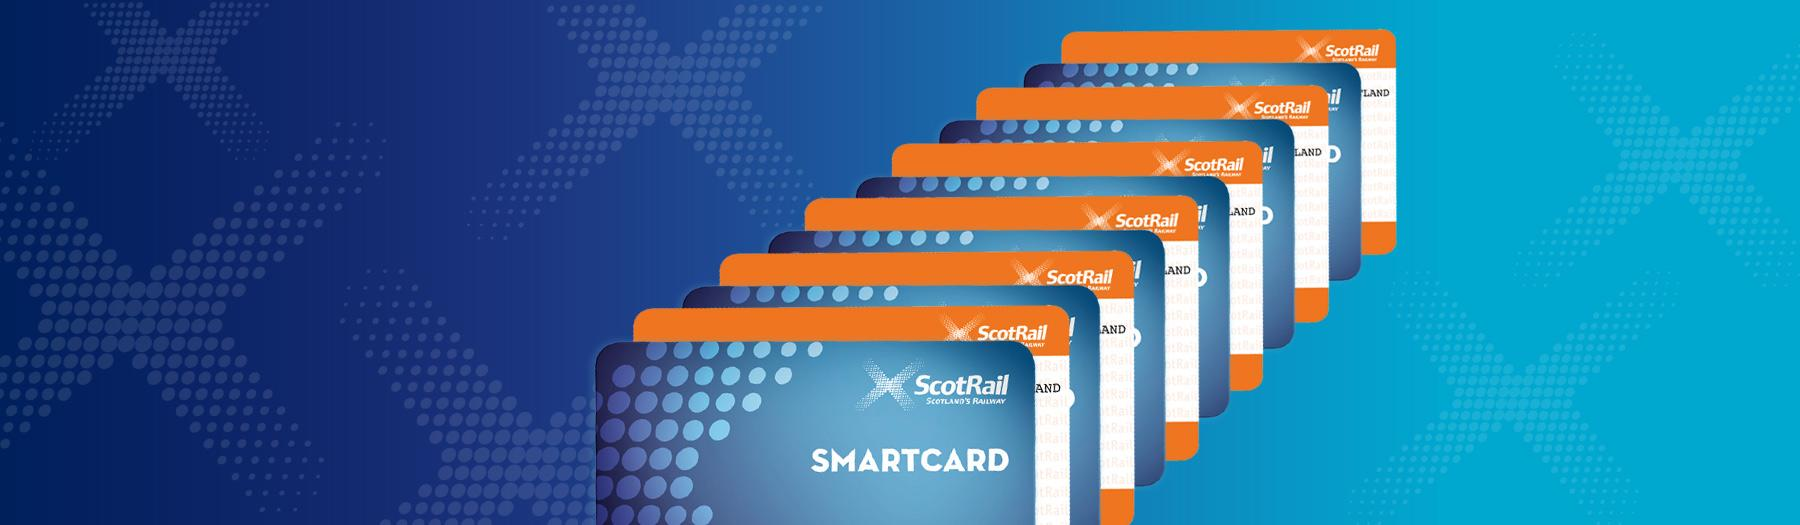 ScotRail Smartcards and paper tickets